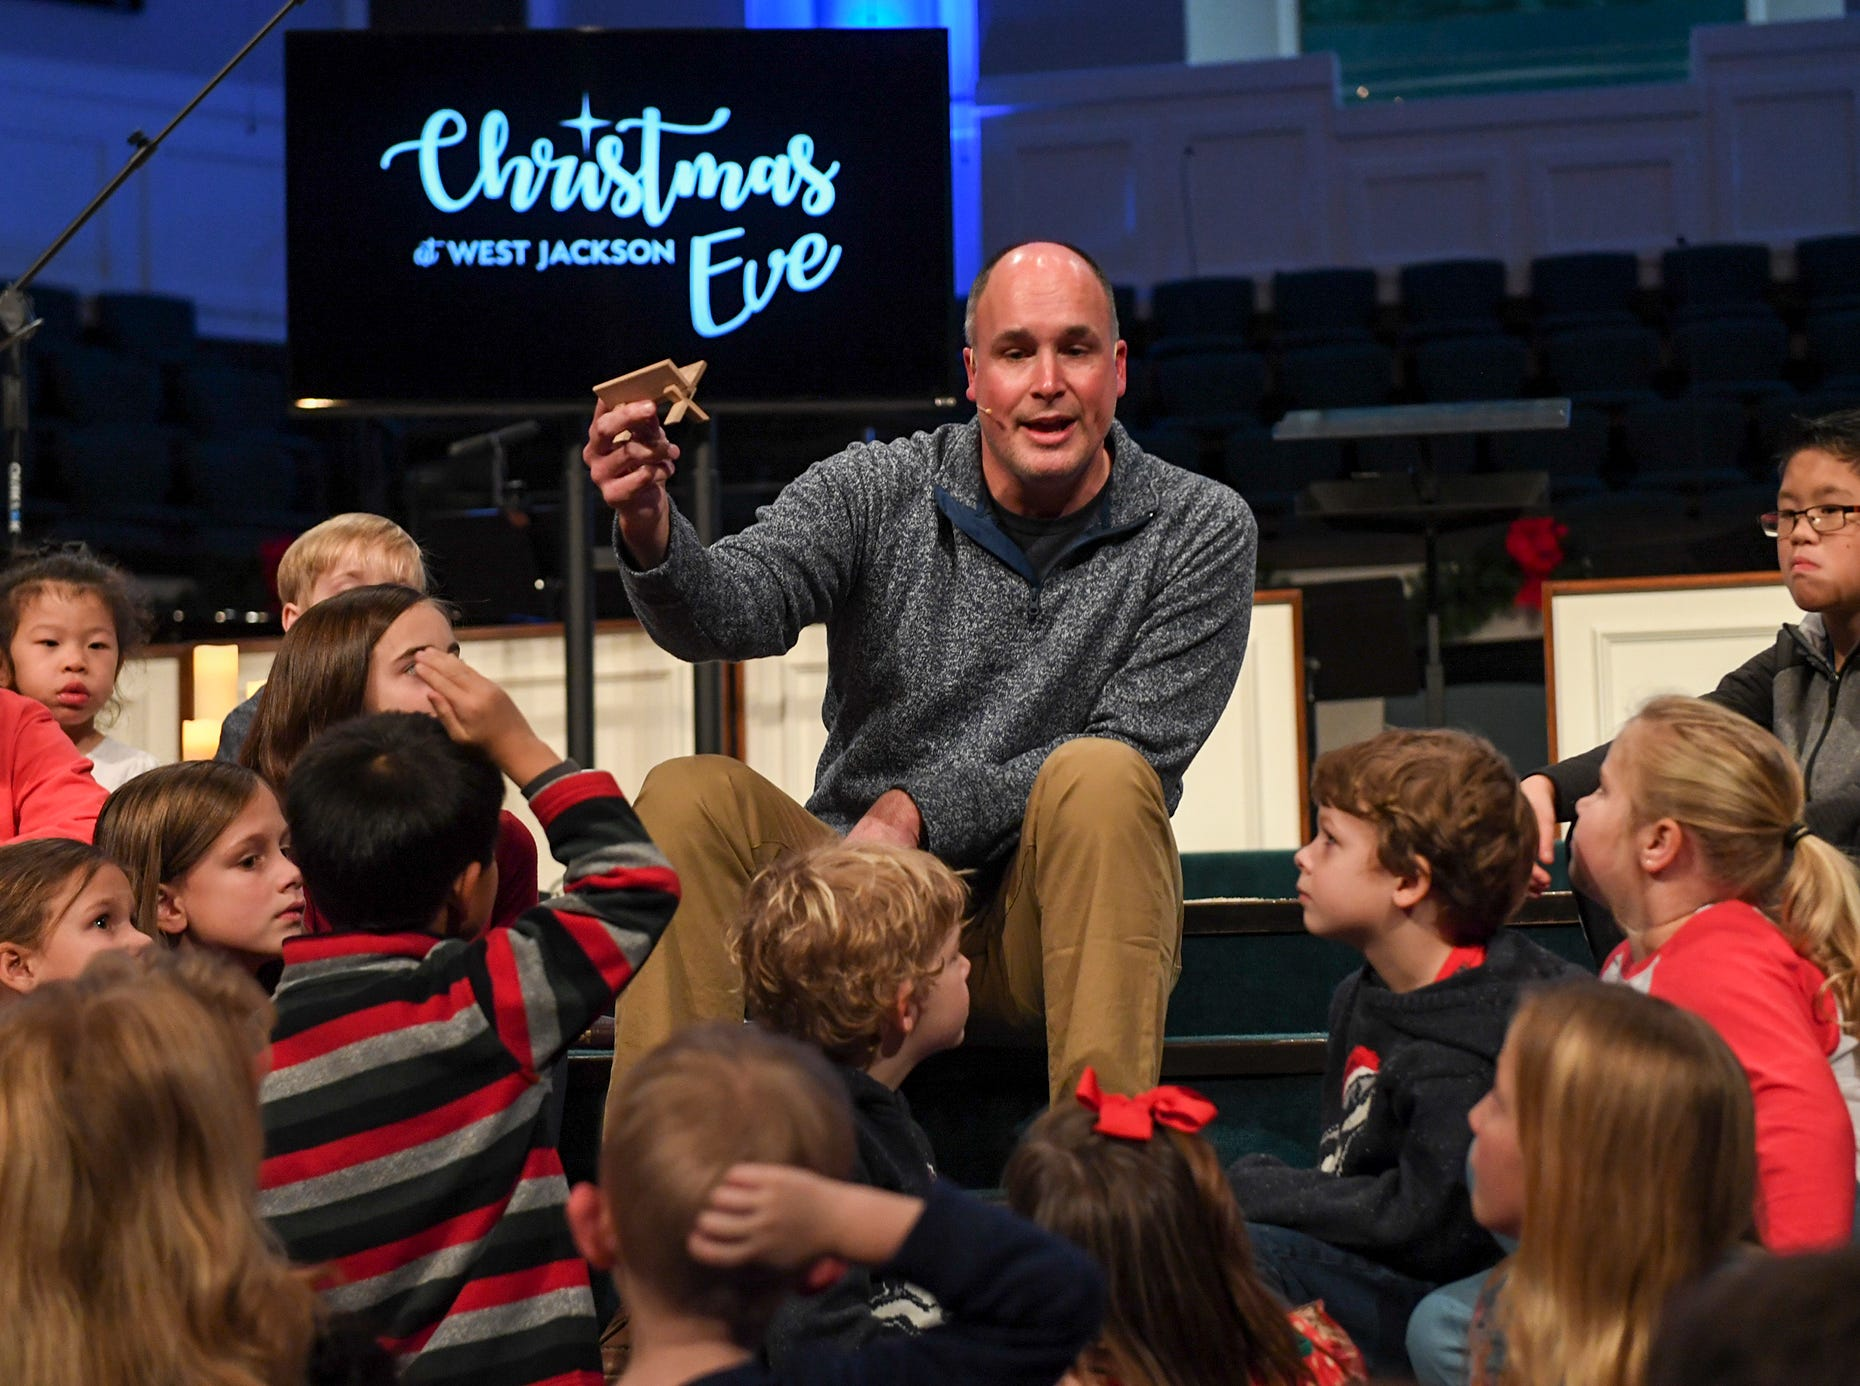 West Jackson Baptist Church Pastor Andy Neely talks to children about the gift of Jesus Christ during Christmas Eve at West Jackson, Monday, Dec. 24.